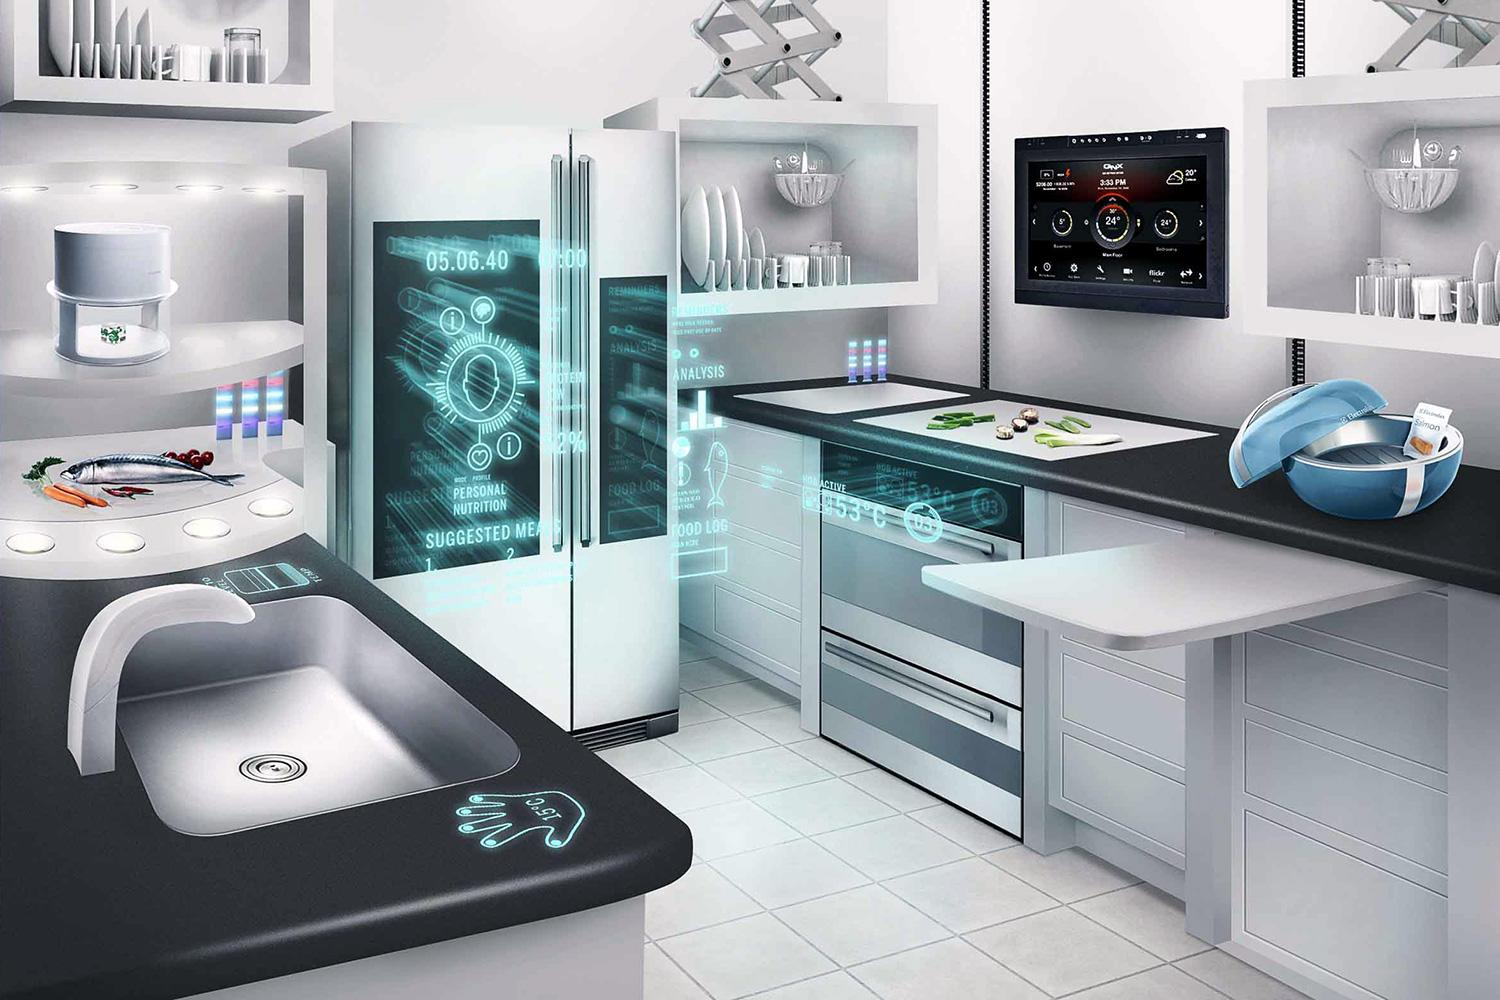 Will Your Smart Home Drive You Crazy? — Make Change